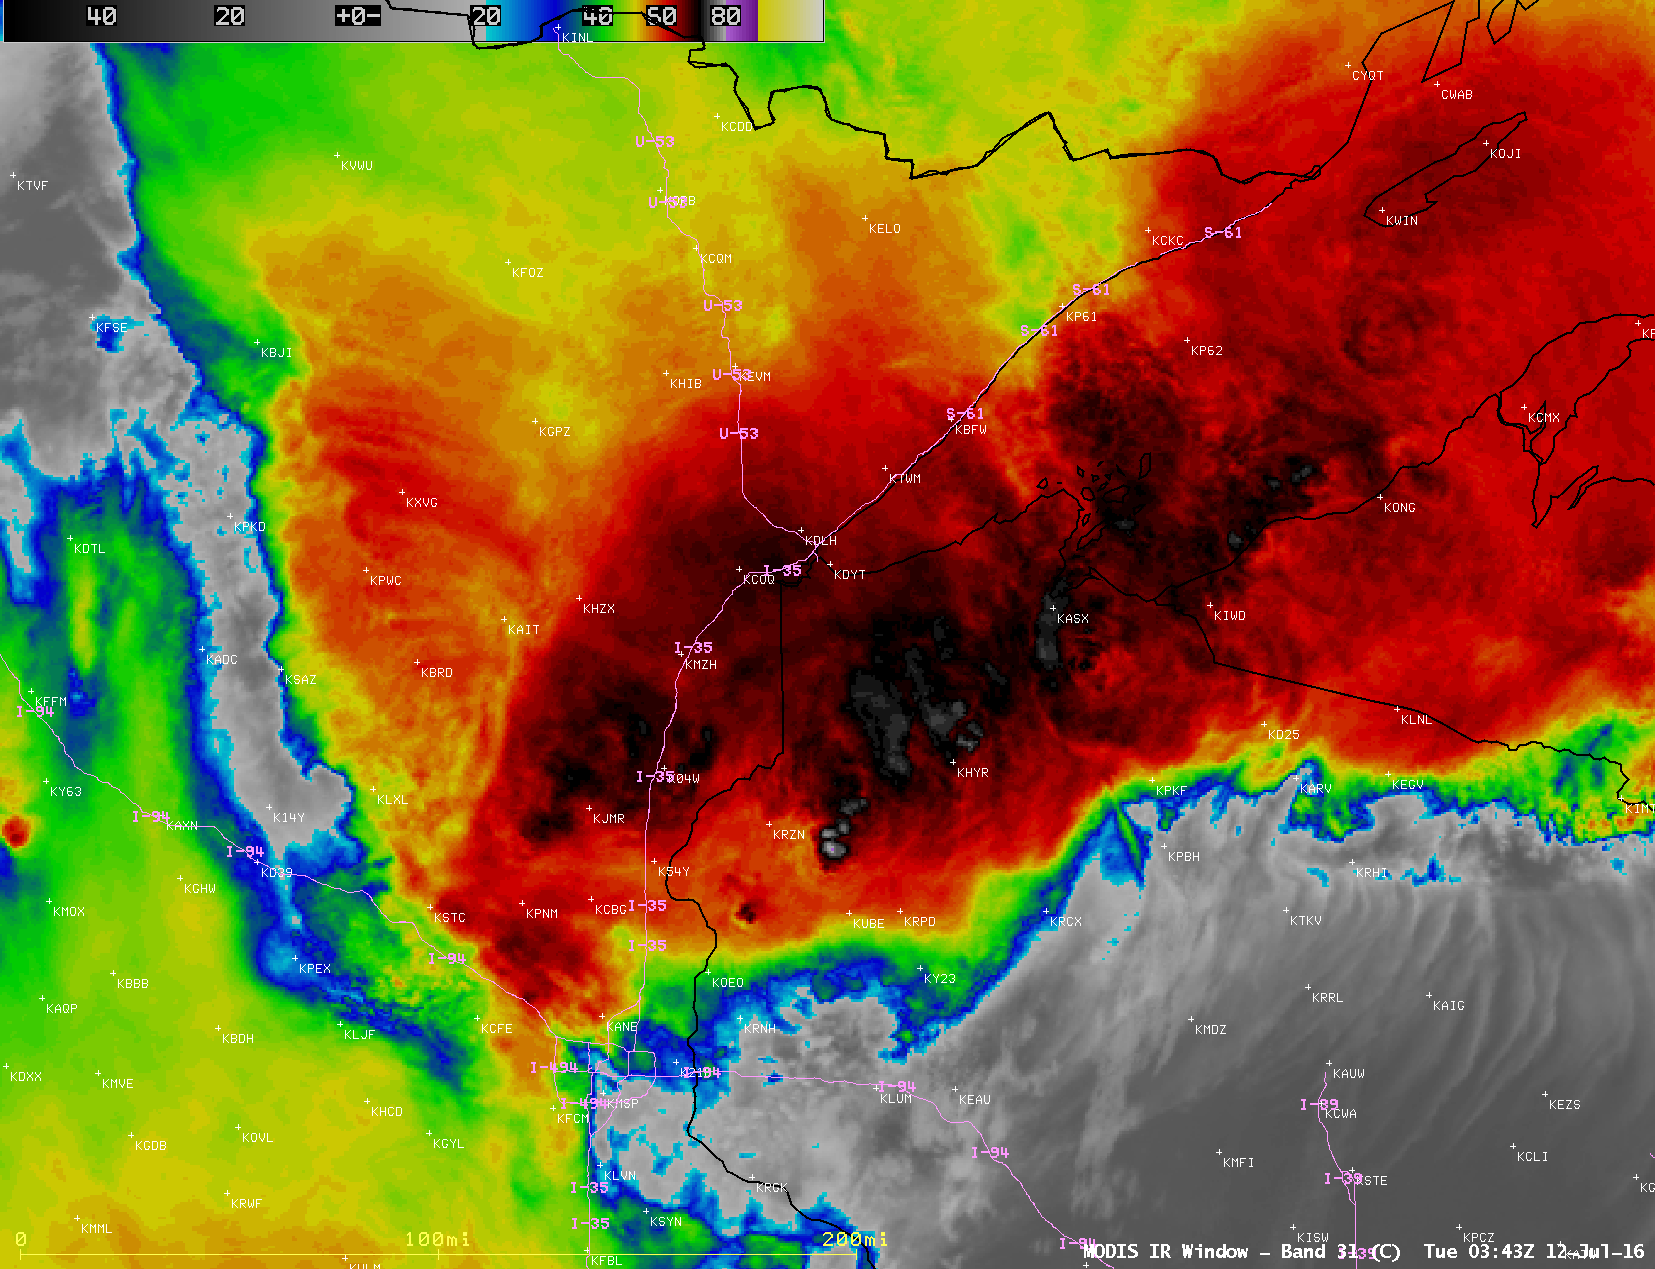 Infrared images from Terra/Aqua MODIS (11.0 µm) and Suomi NPP VIIRS (11.45 µm) [click to play animation]